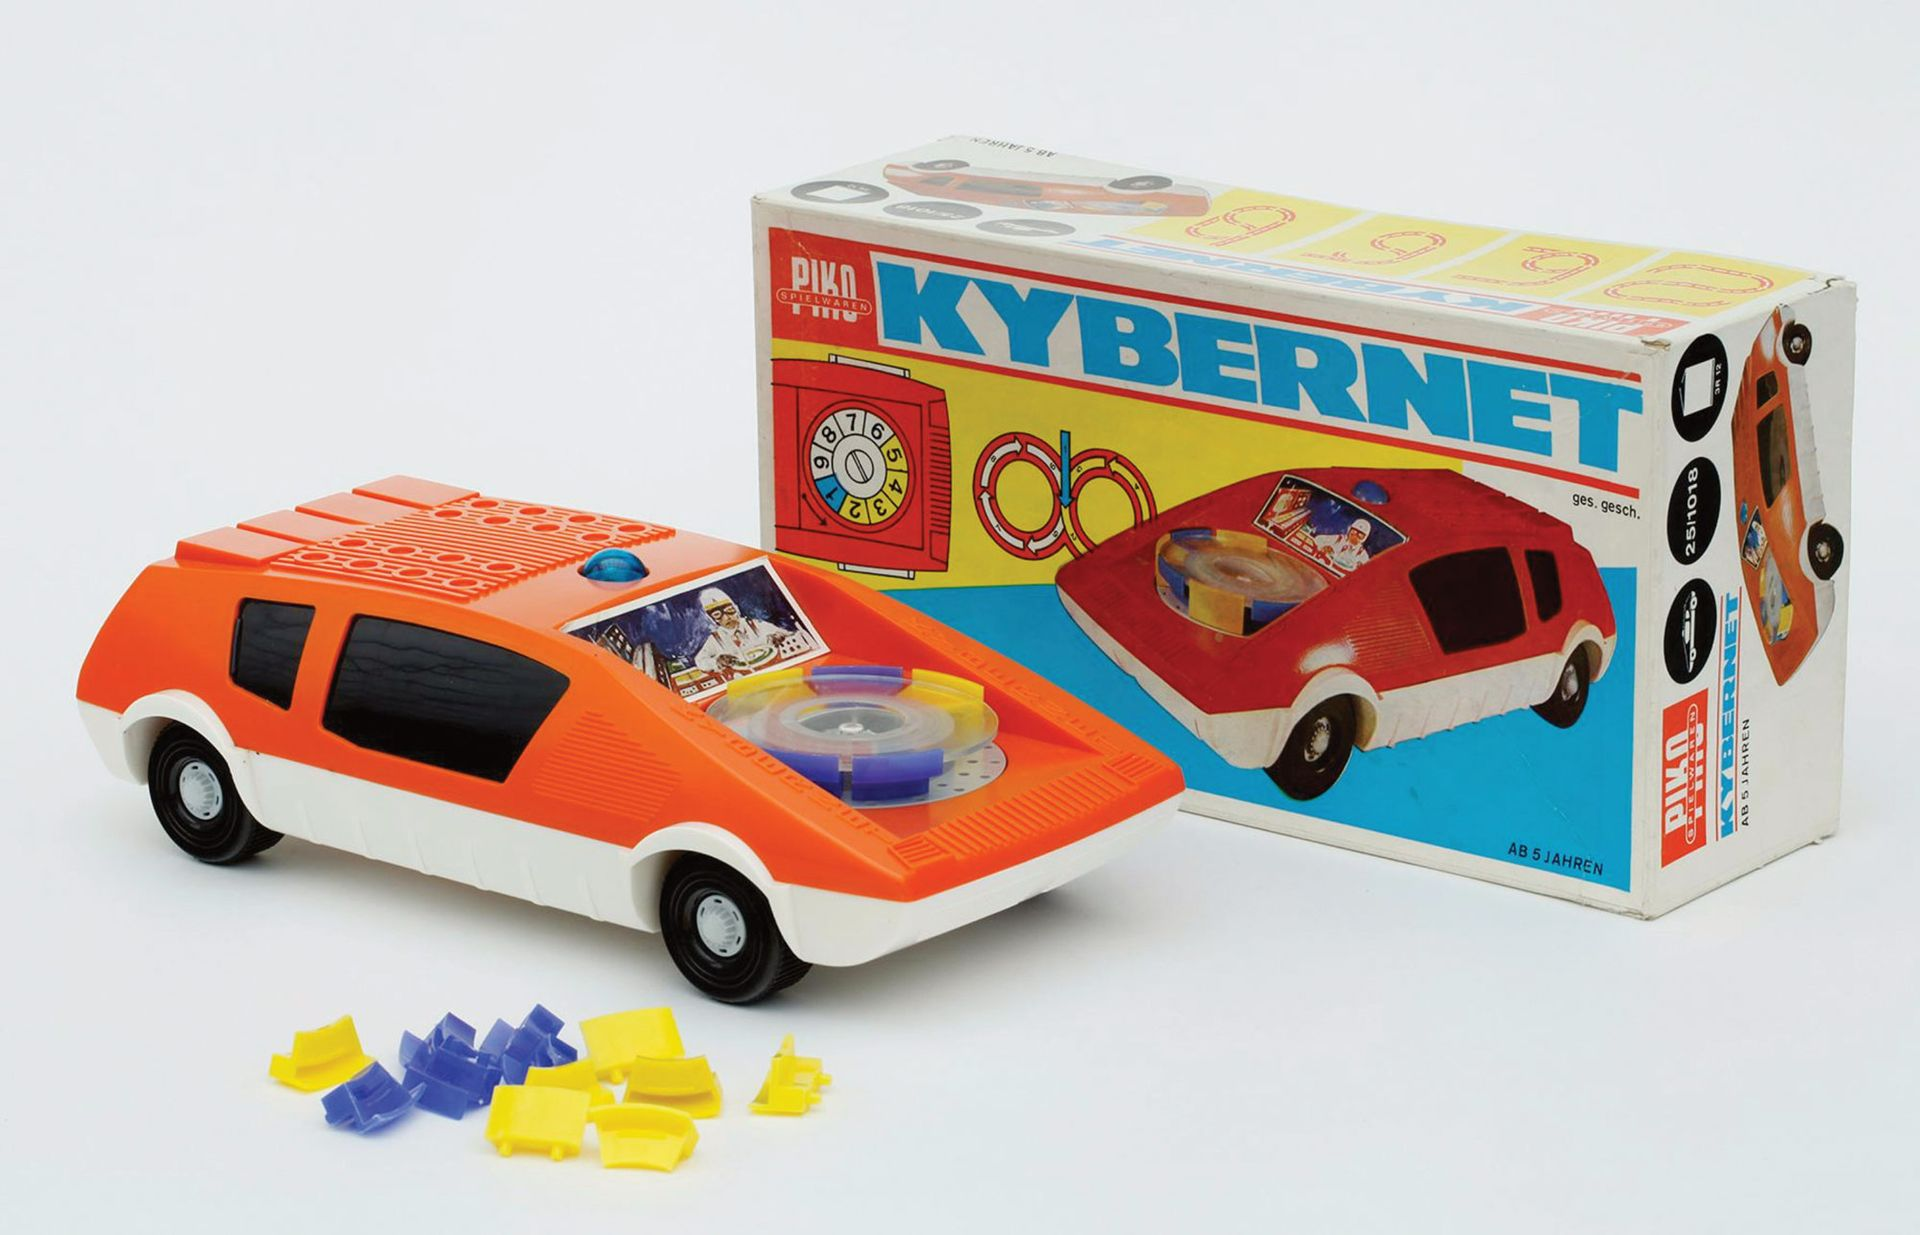 Cybernet toy car (1974) by VEB Piko Sonneberg © Die Neue Sammlung—The Design Museum/A. Laurenzo; Courtesy of the J. Paul Getty Trust